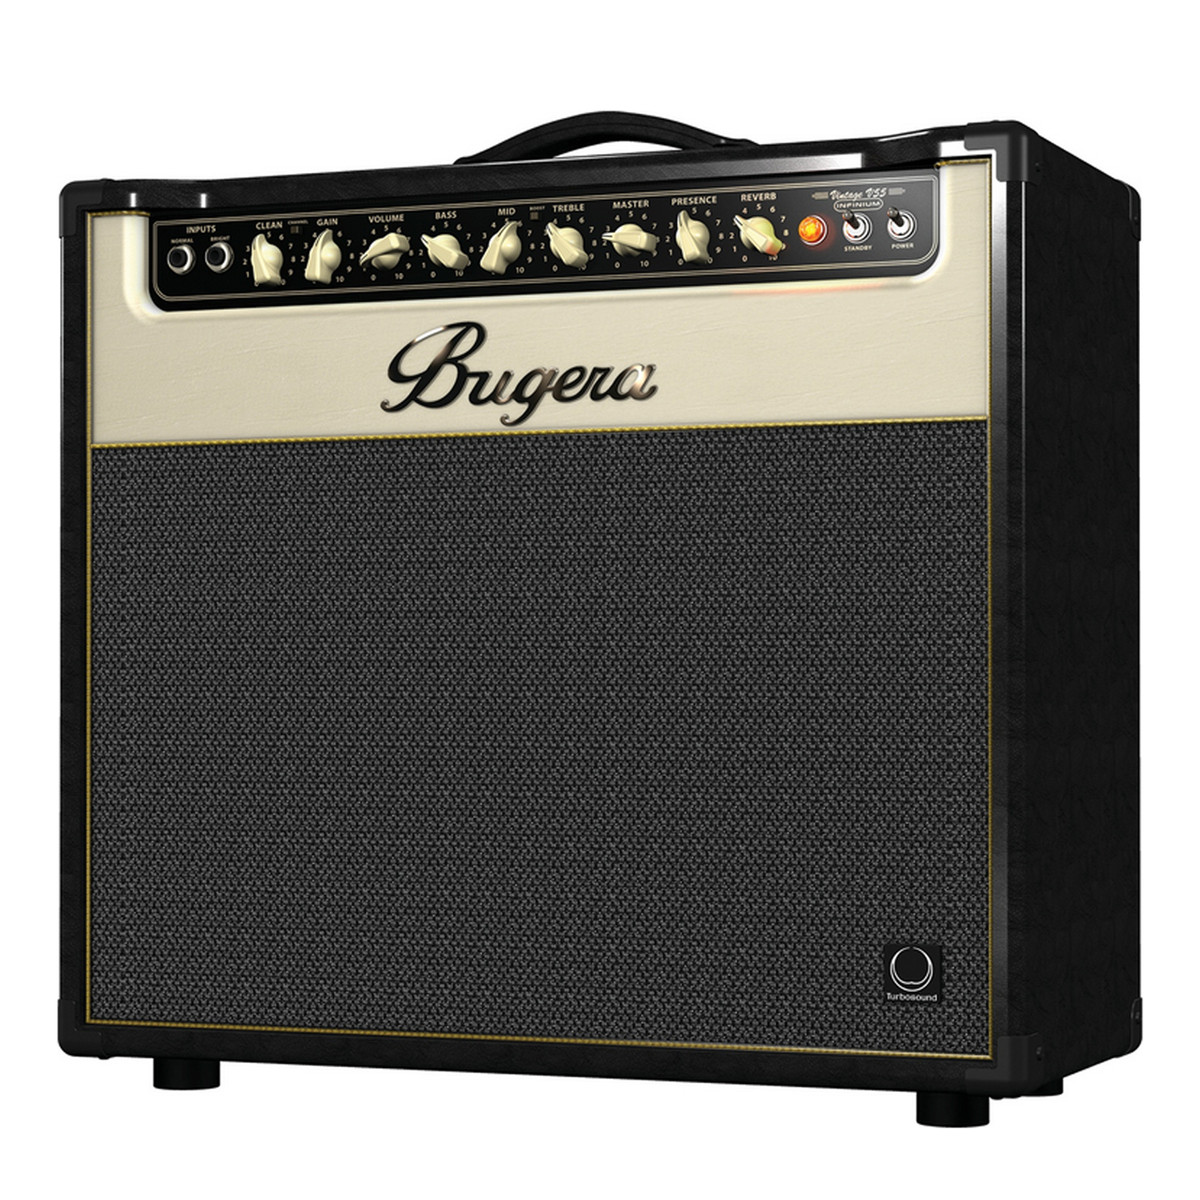 bugera v55 infinium 55 watt vintage 2 channel tube combo amp b stock at gear4music. Black Bedroom Furniture Sets. Home Design Ideas